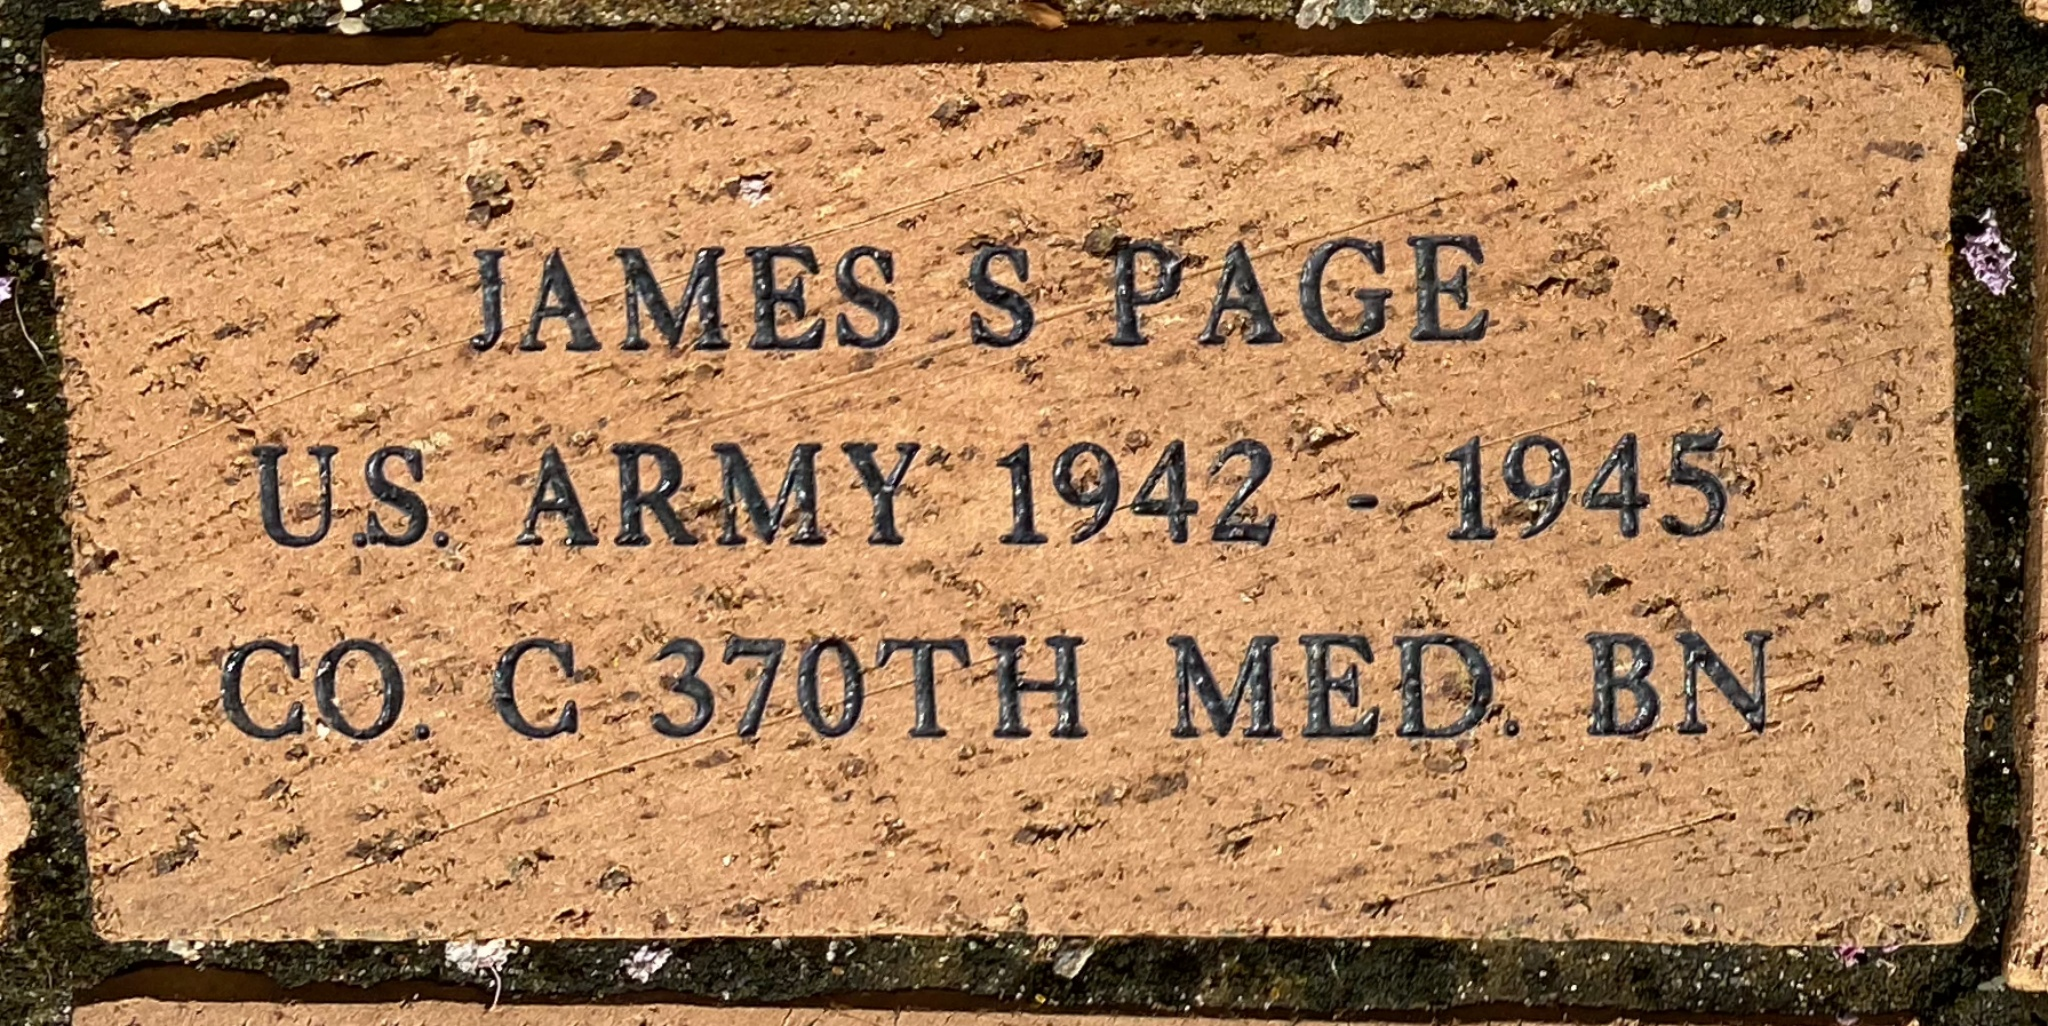 JAMES S PAGE U.S. ARMY 1942 – 1945 CO. C 370TH MED. BN